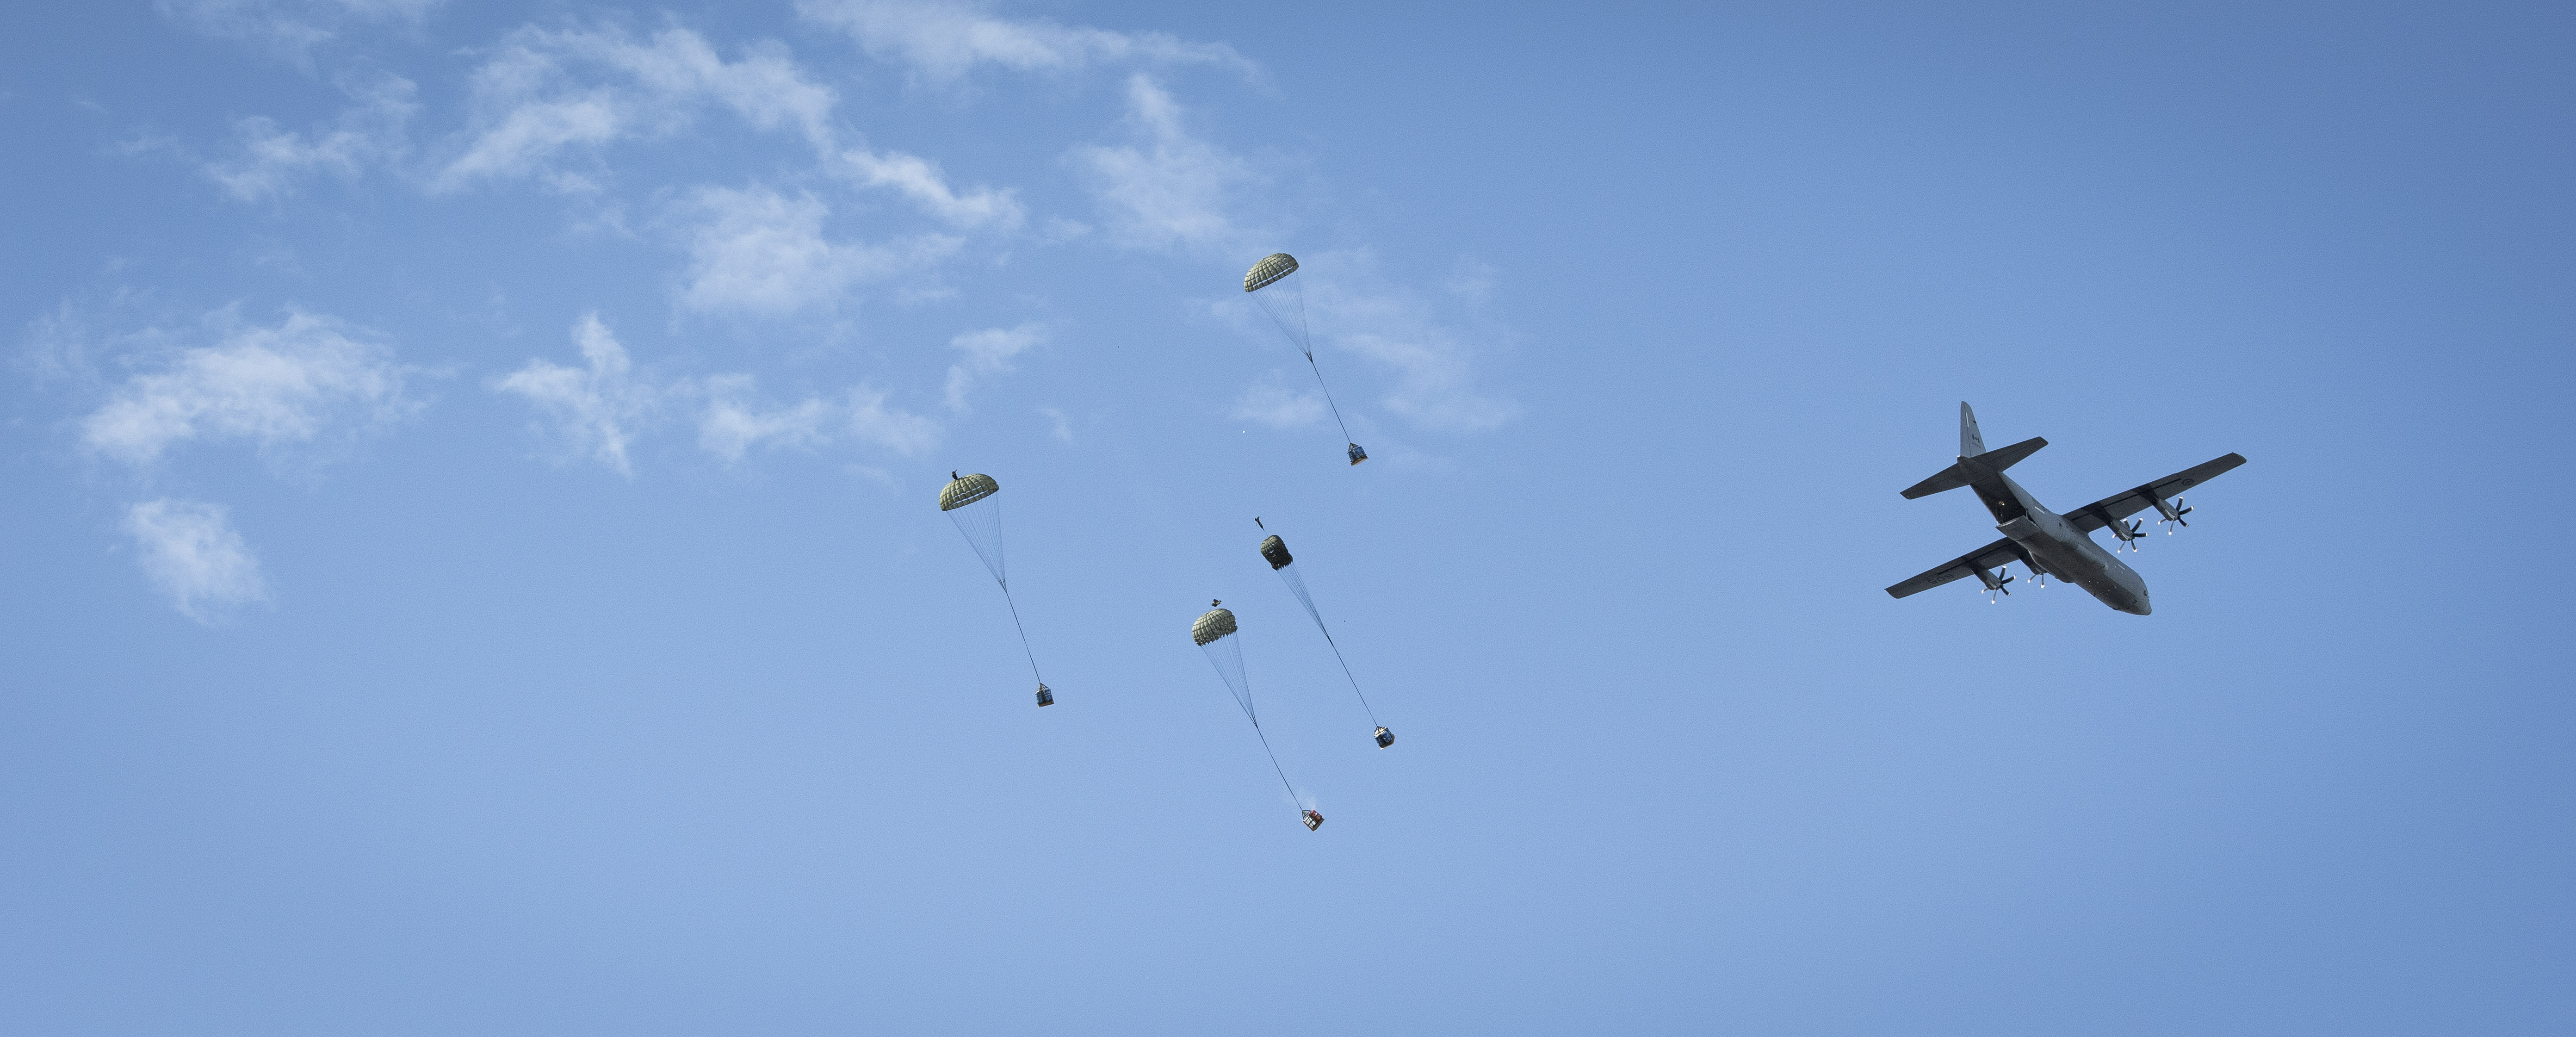 Four containers attached to parachutes falling in the sky with a large grey propeller aircraft flying overhead on the right.